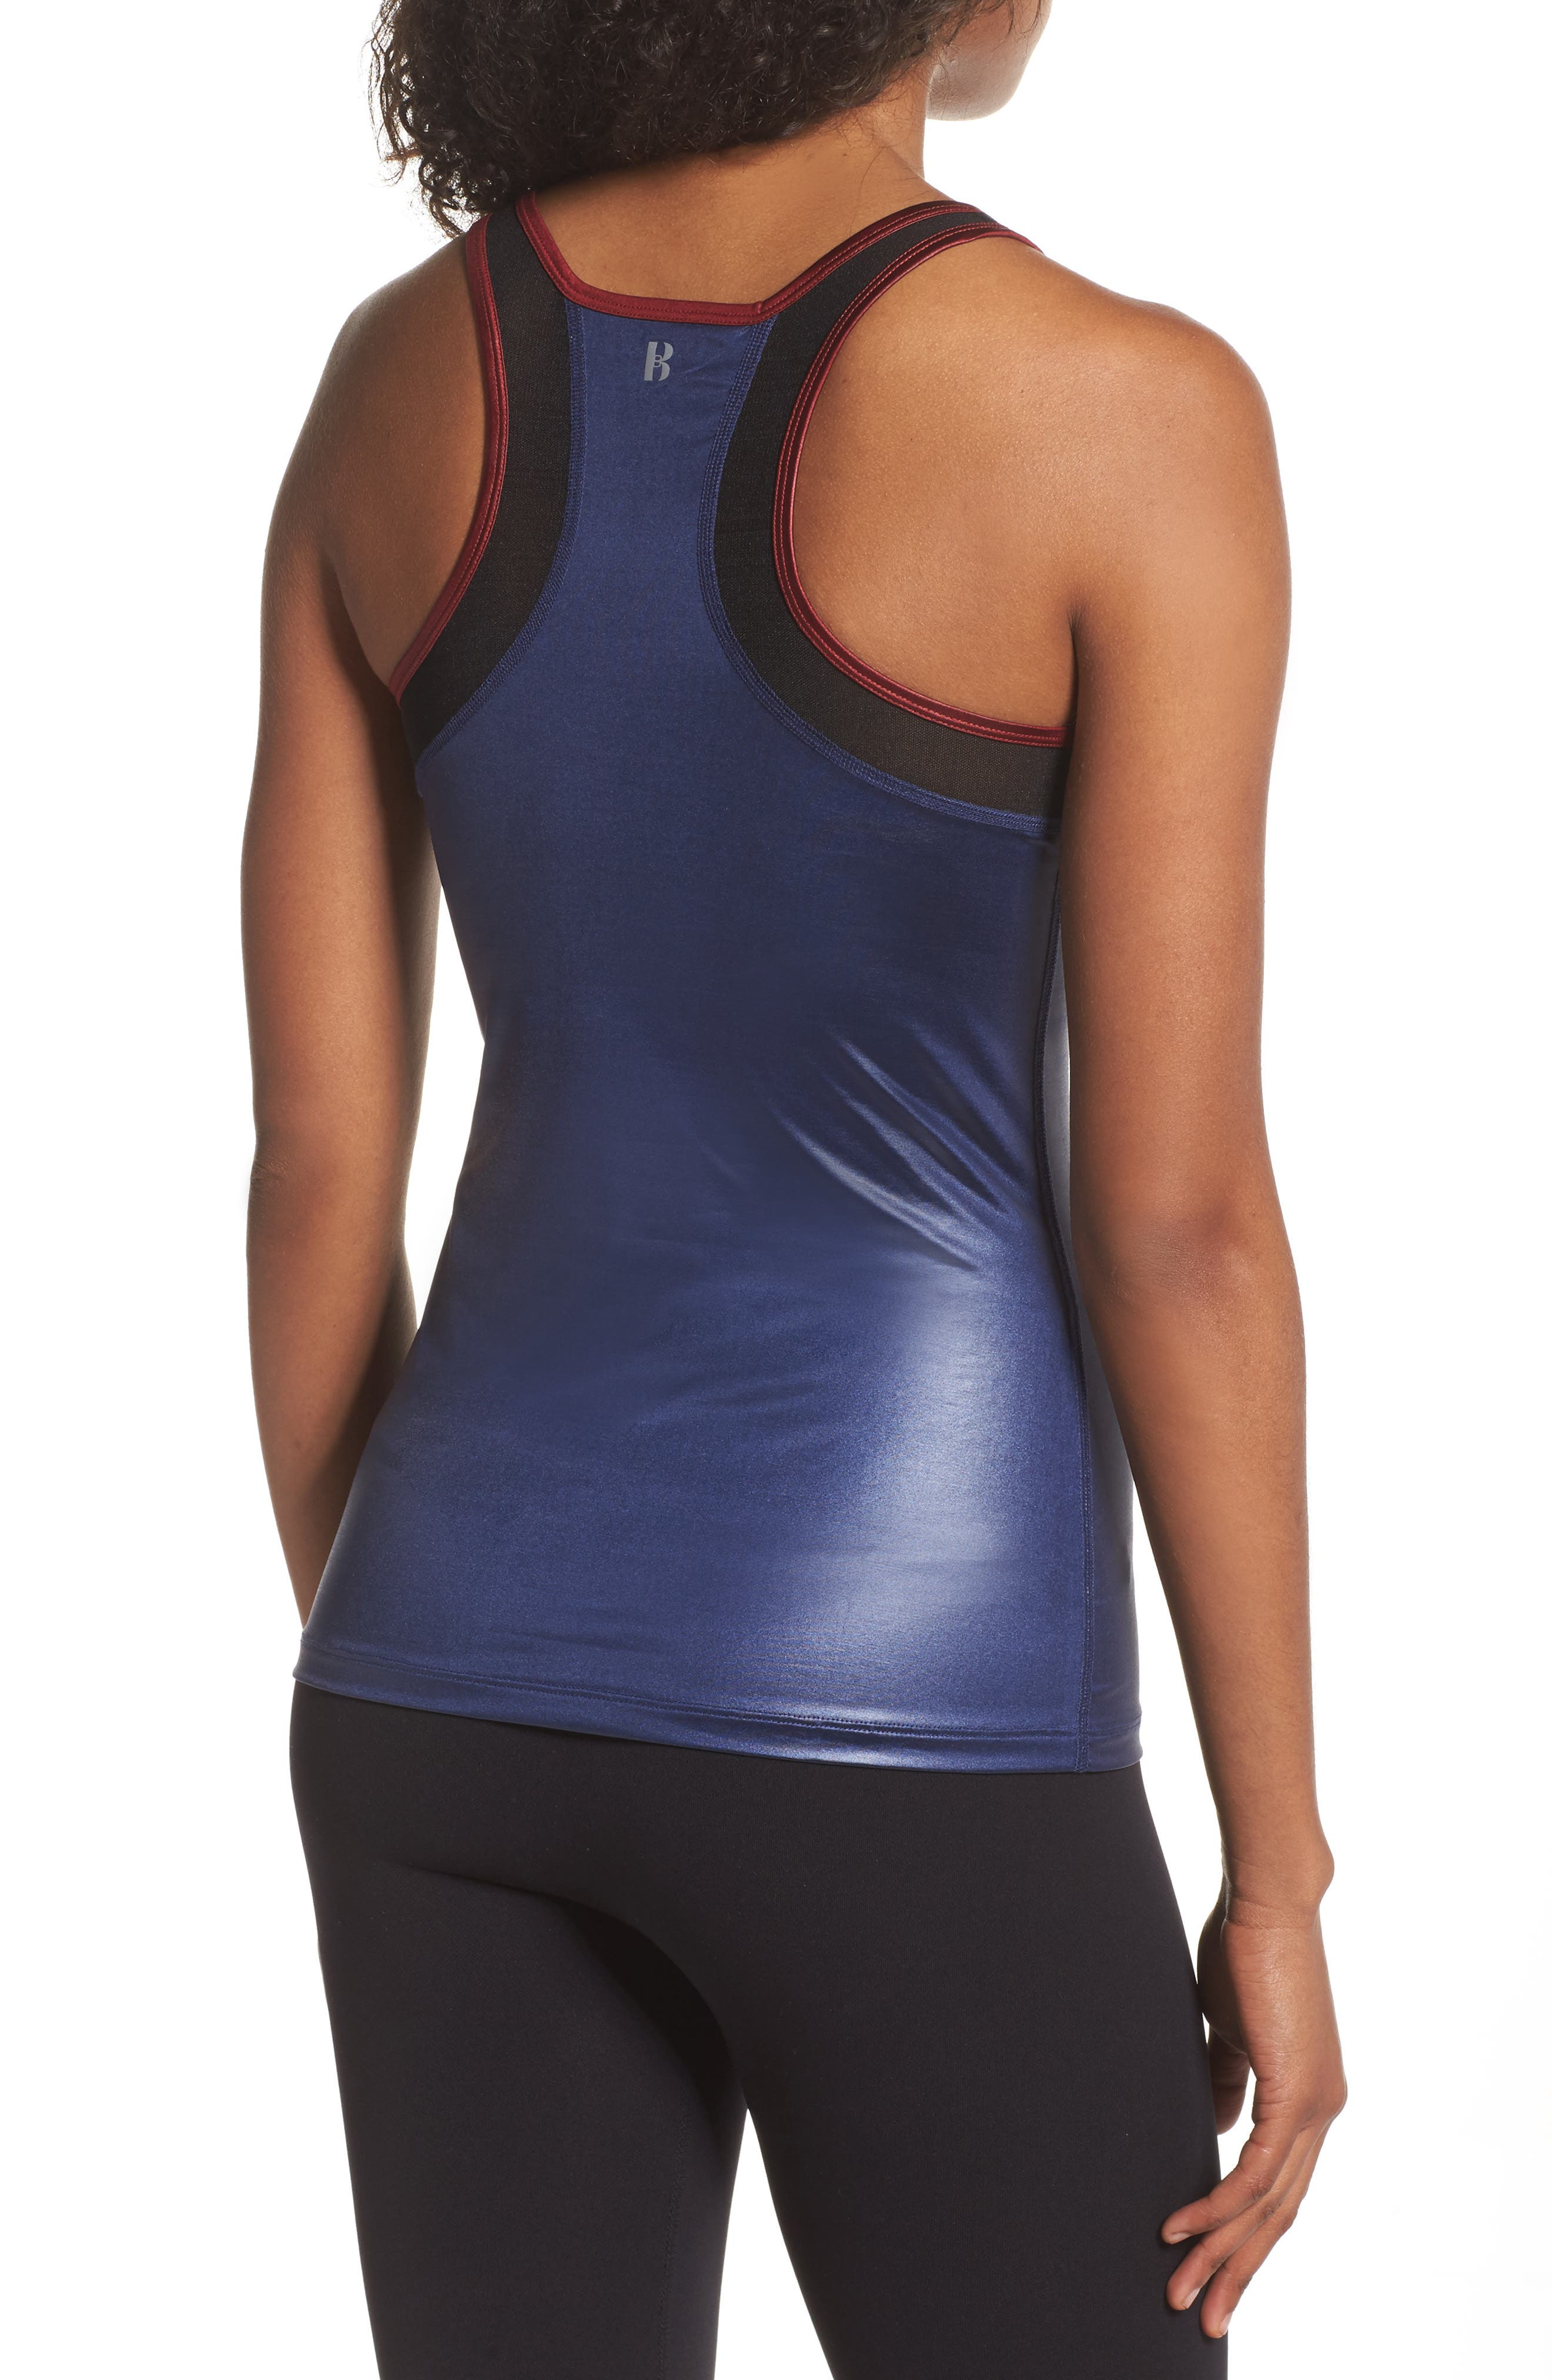 BoomBoom Athletica Glossy Tank,                             Alternate thumbnail 2, color,                             Navy/Oxblood